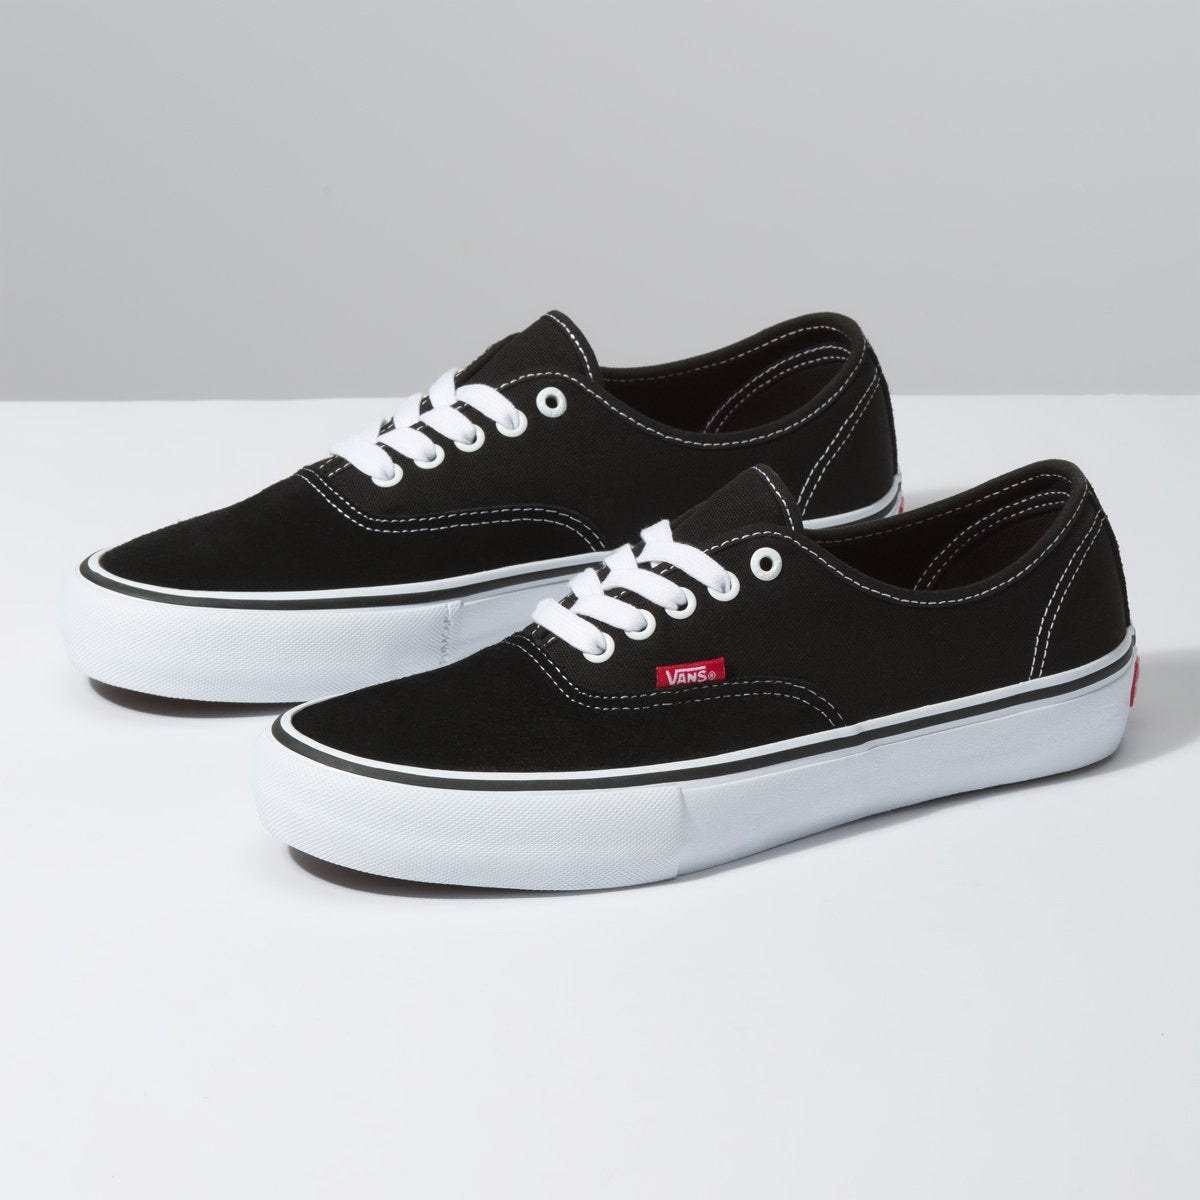 Zapatillas Vans Authentic Pro - Black/True White - Vans